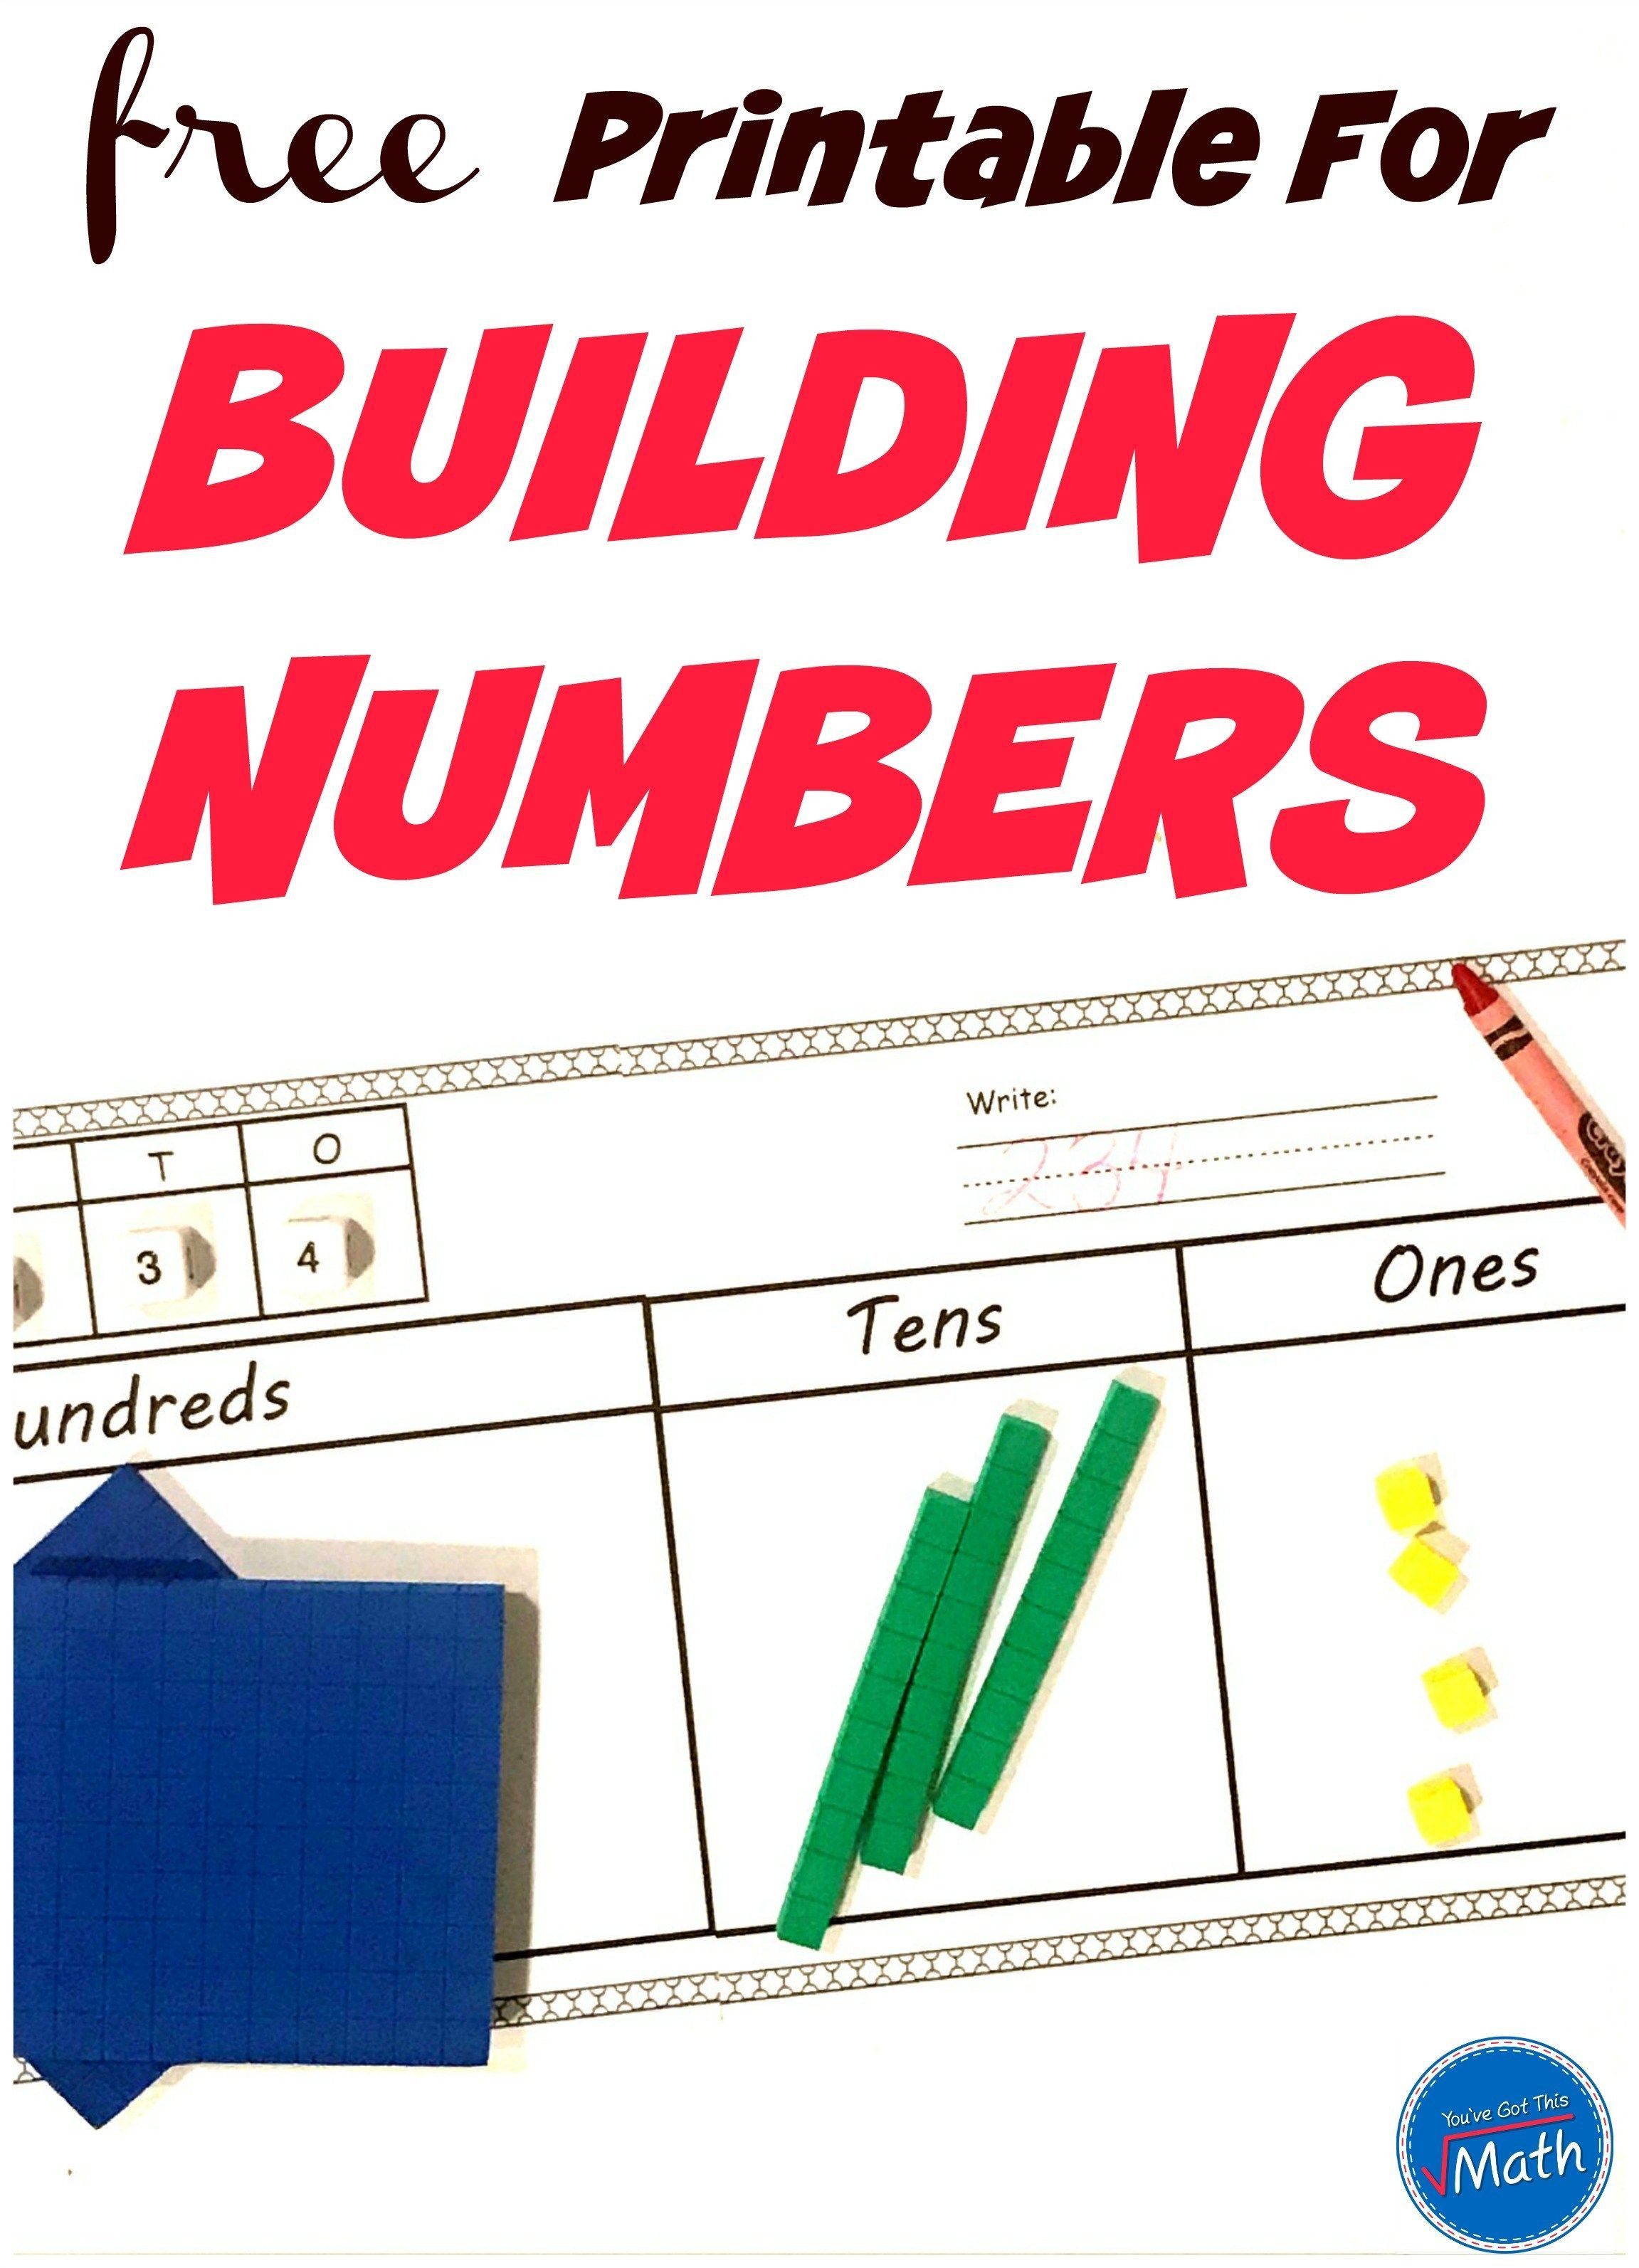 Free Base Ten Blocks Activity For Building Number Sense